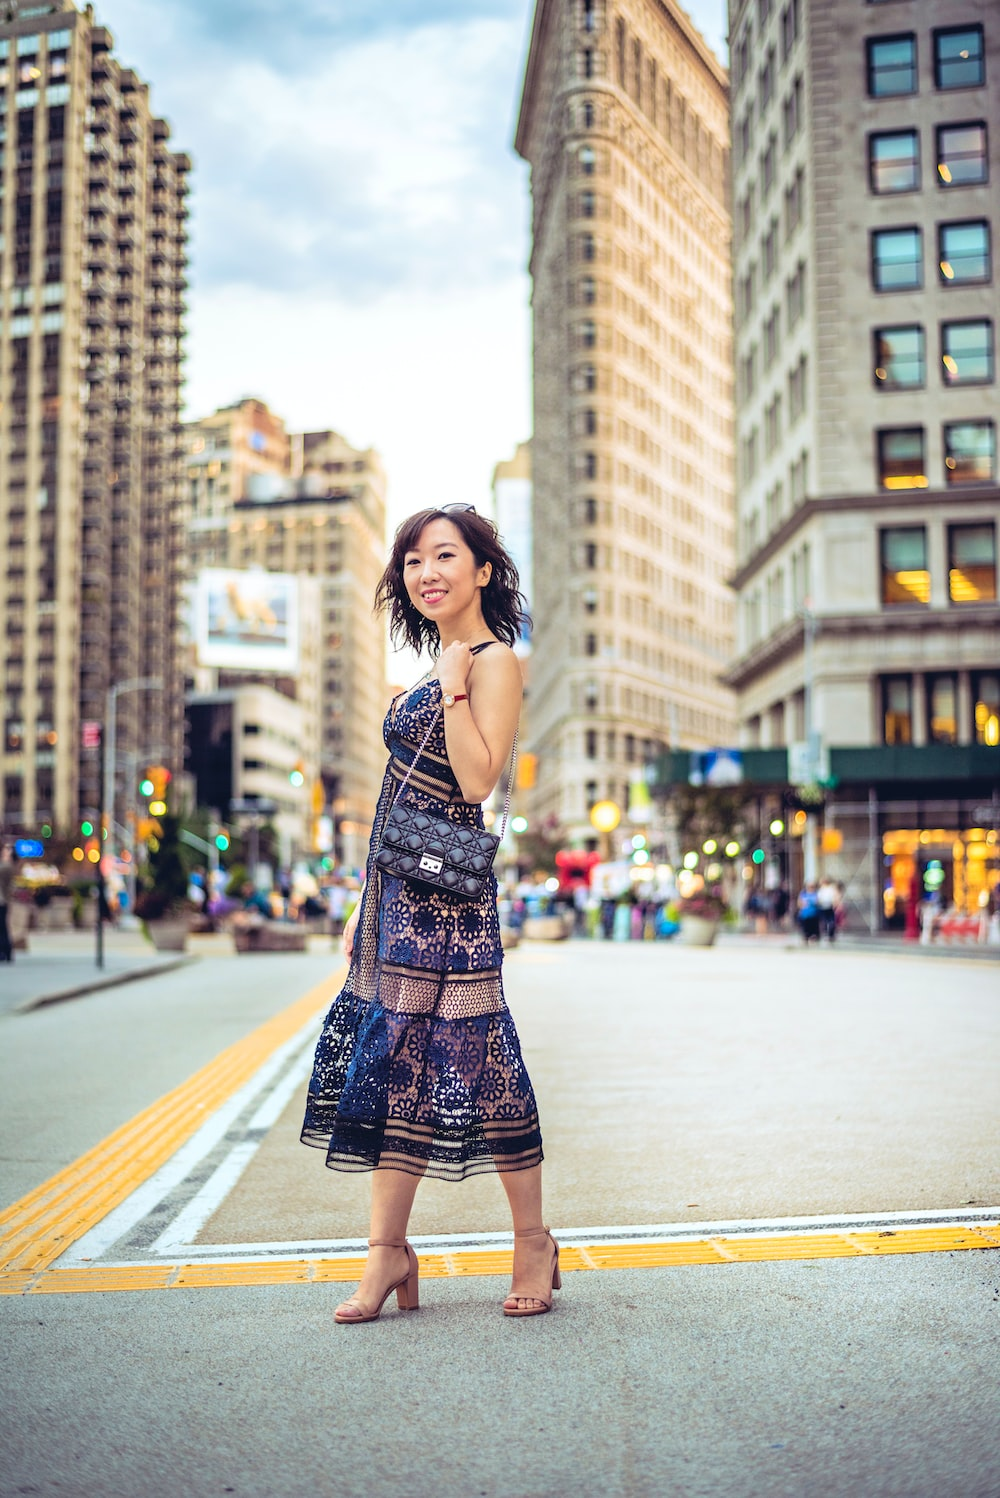 woman standing in center of street near buildings